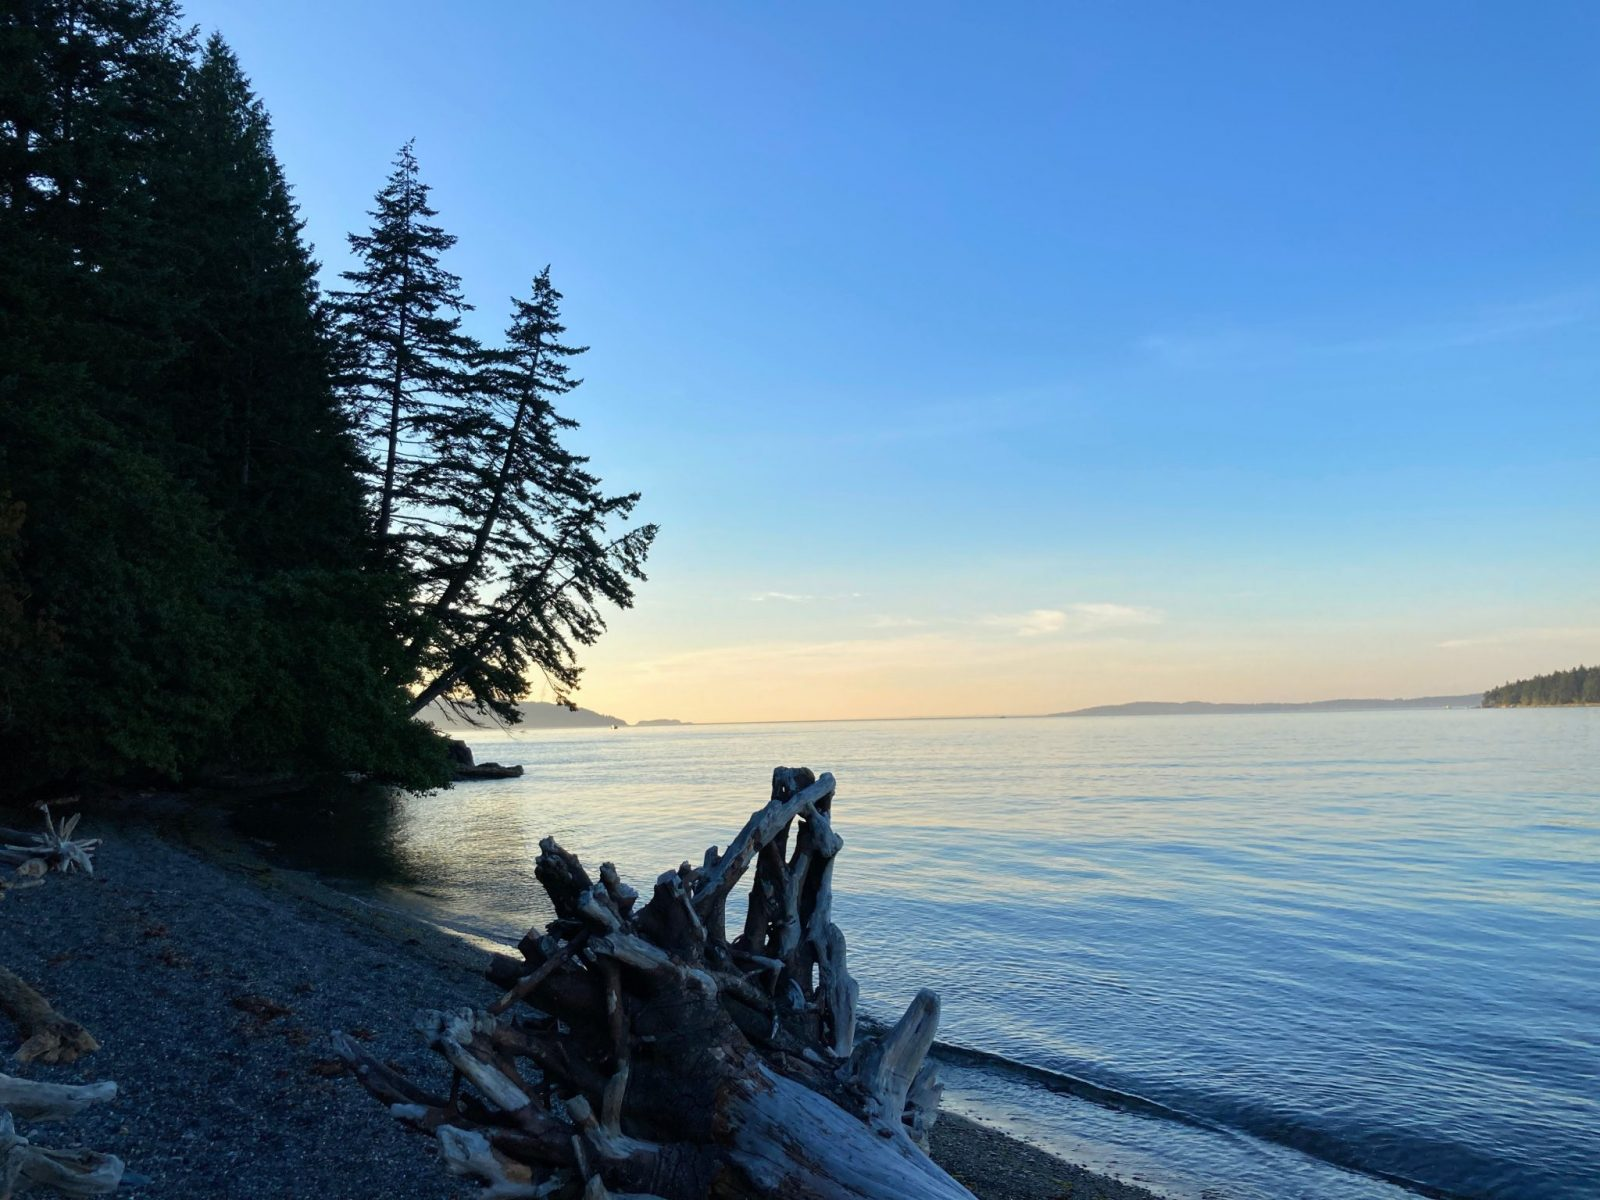 Camping in the san juan islands at Pelican Beach on Cypress Island. The sun has just set behind the trees. Pink light is visible in the sky. Driftwood is in the foreground on a gravel beach